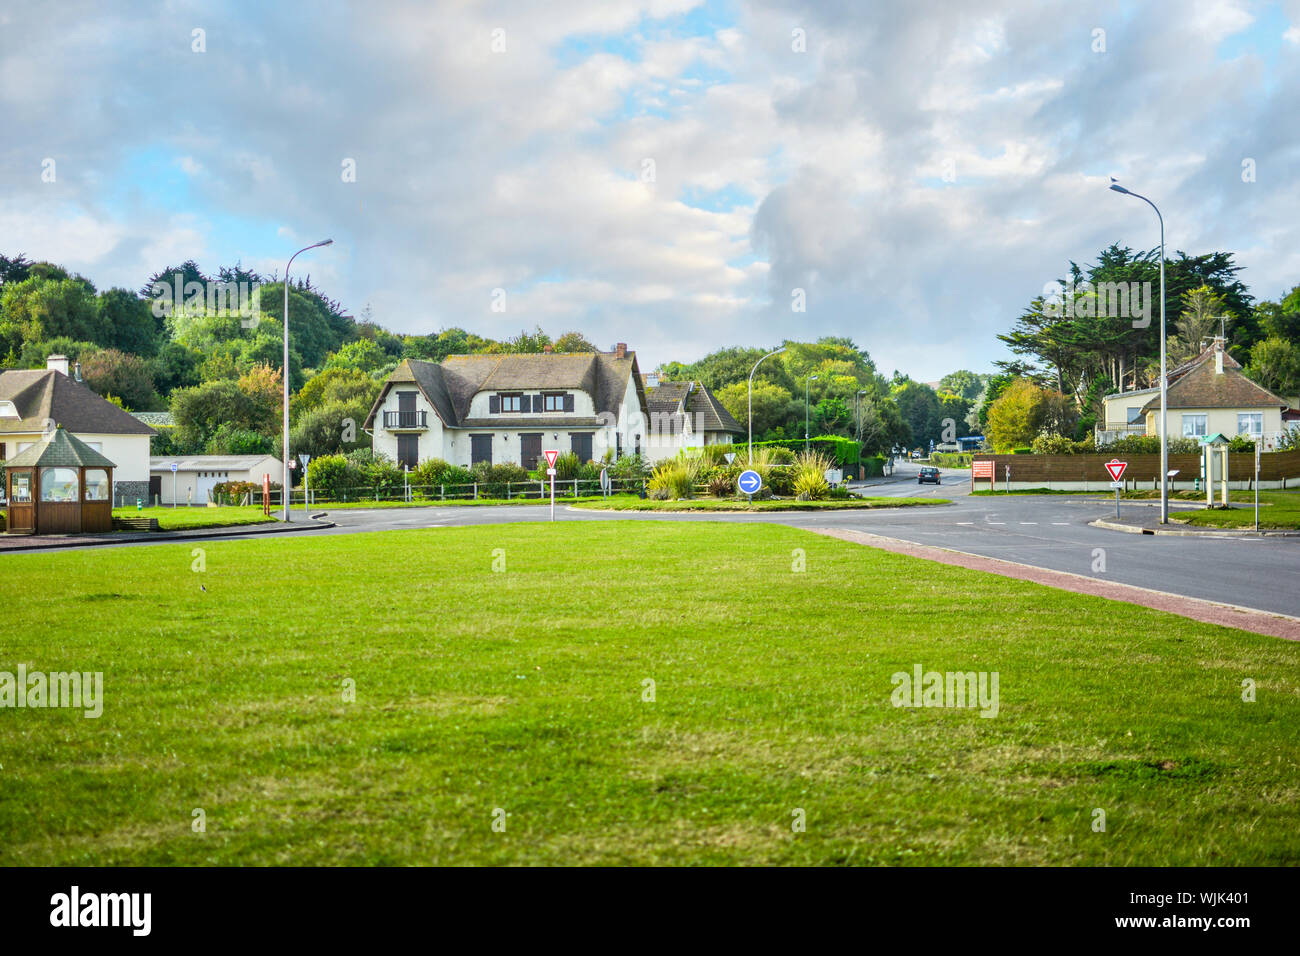 The French village of Vierville-sur-Mer along the coast of the English Channel in Normandy, site of the famous Omaha Beach 1944 D Day invasion. Stock Photo